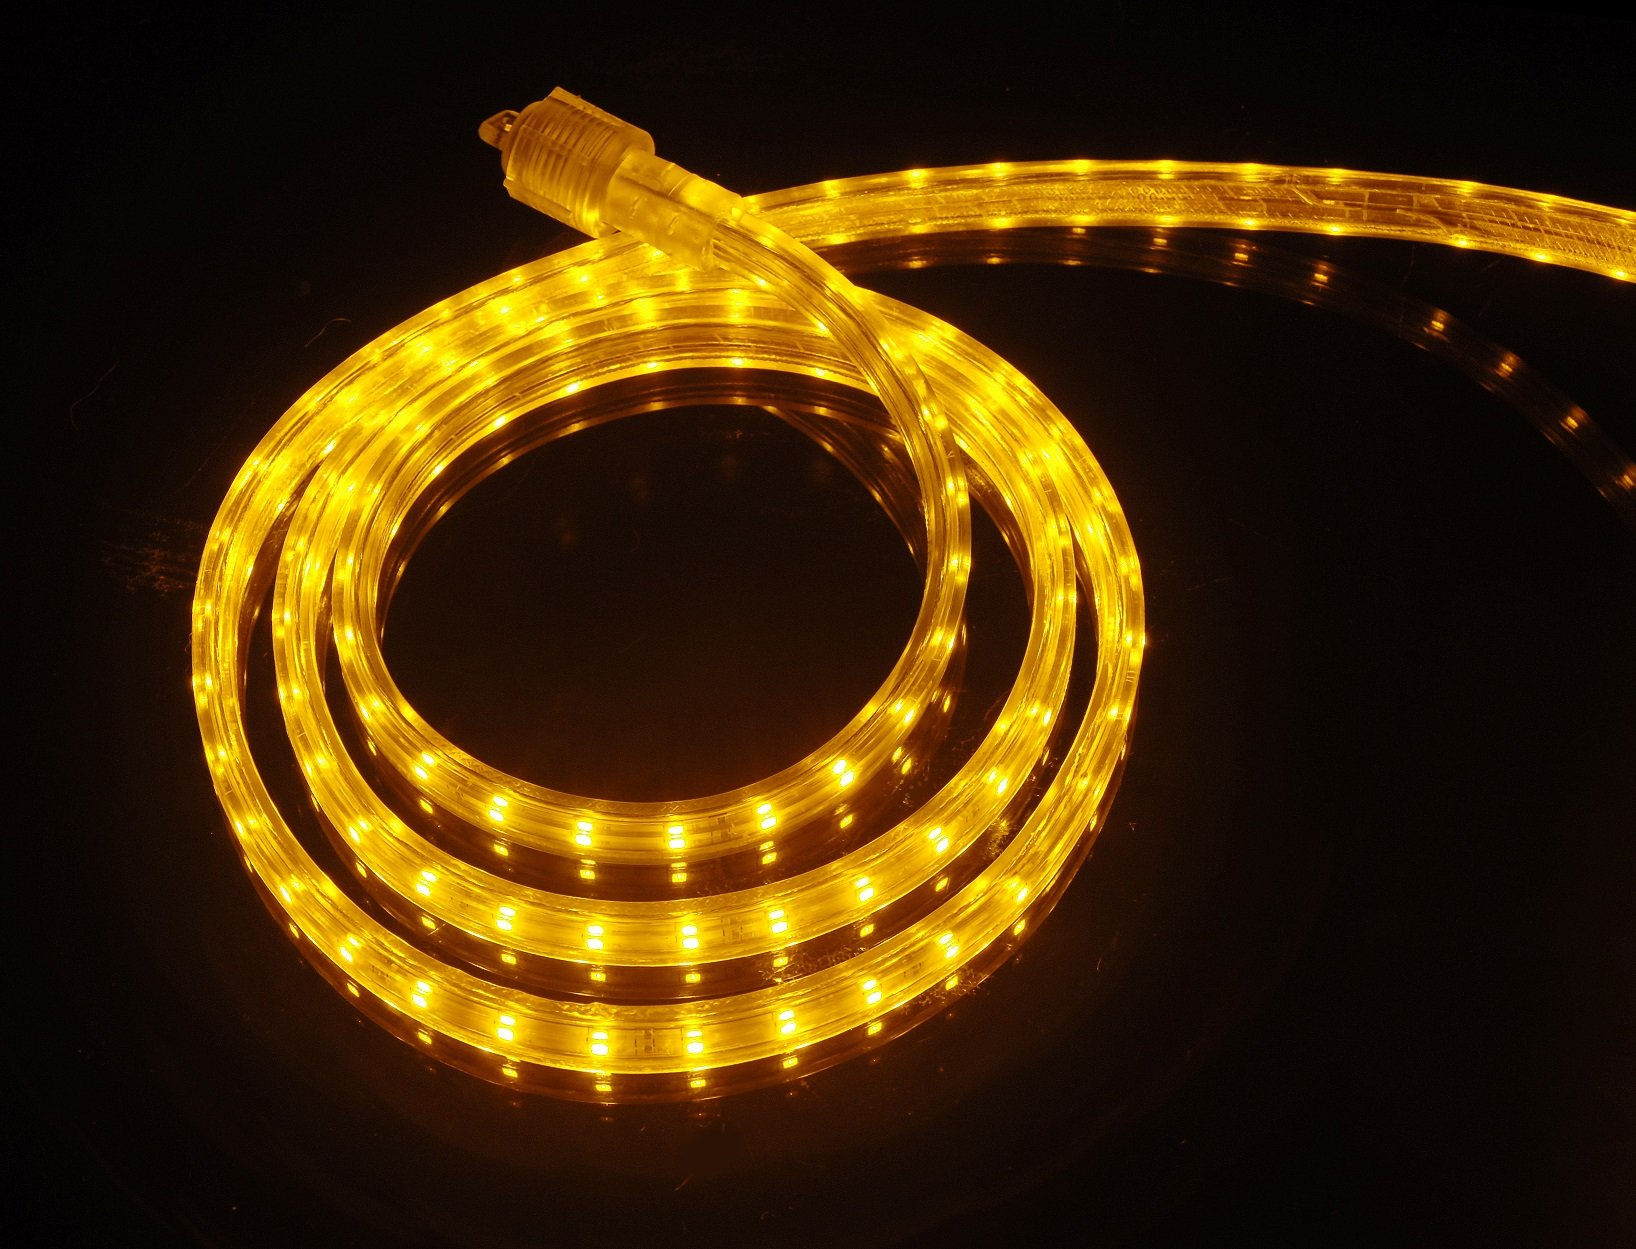 CBConcept UL Listed, 100 Feet, 10100 Lumen, Yellow, Dimmable, 110-120V AC Flexible Flat LED Strip Rope Light, 1830 Units 3528 SMD LEDs, Indoor/Outdoor Use, Accessories Included, [Ready to use]